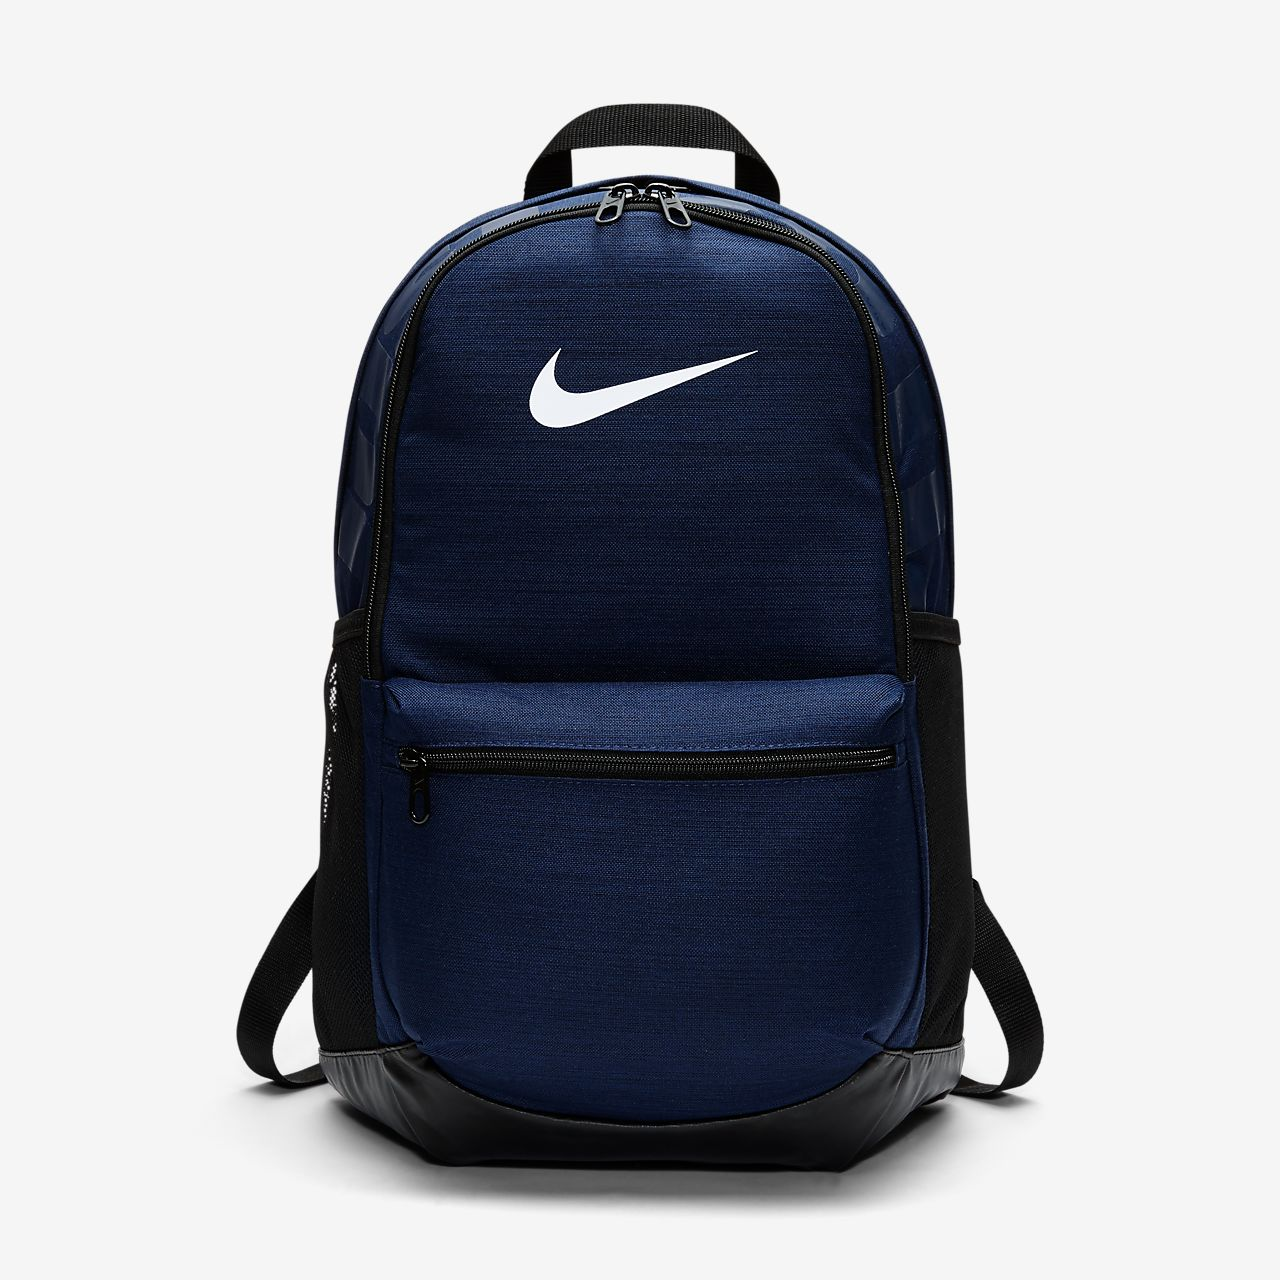 ab772c66ef1d Nike Brasilia (Medium) Training Backpack. Nike.com AU